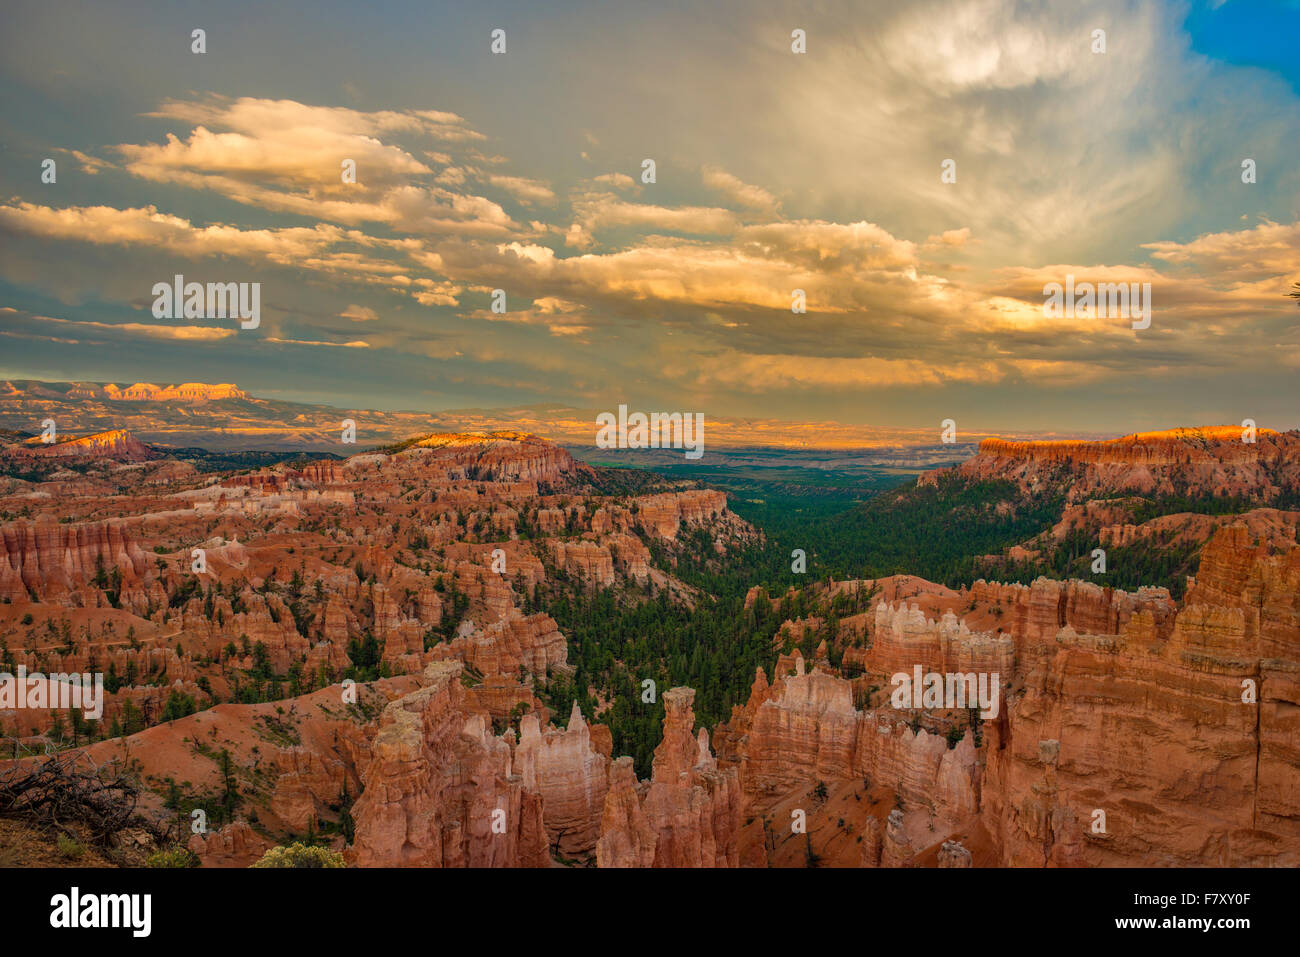 Sunset Point Blick, Bryce-Canyon-Nationalpark, Utah, Wasatch Kalkstein pinnacles Stockbild